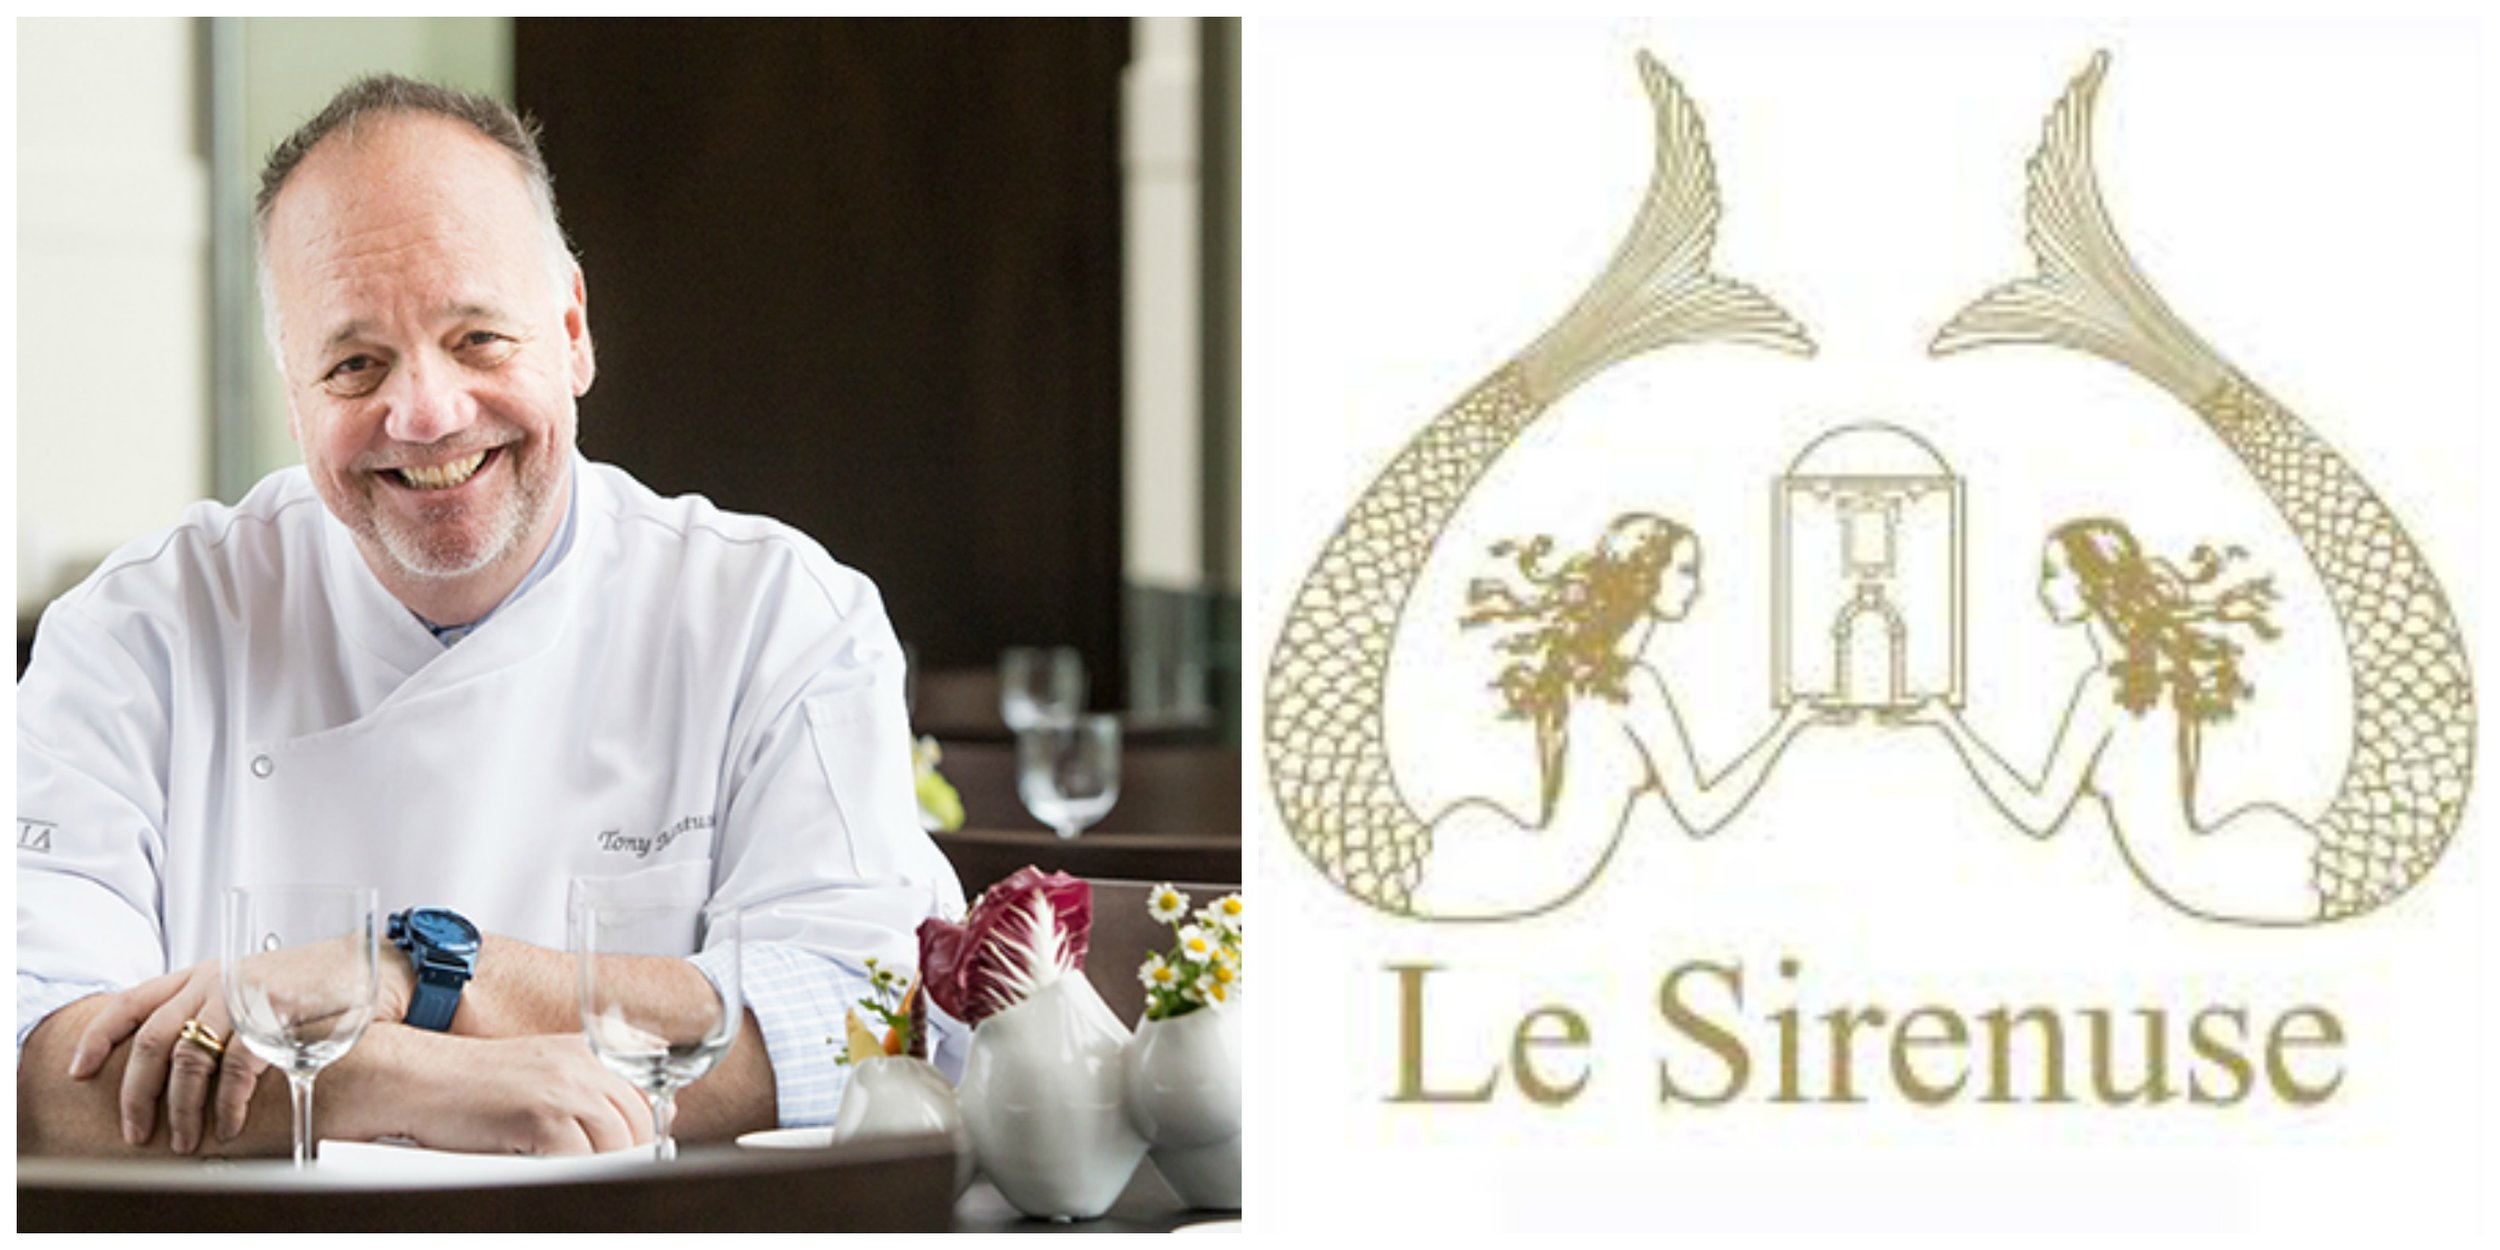 James Beard Pop Up Dinner in Miami at Le Sirenuse